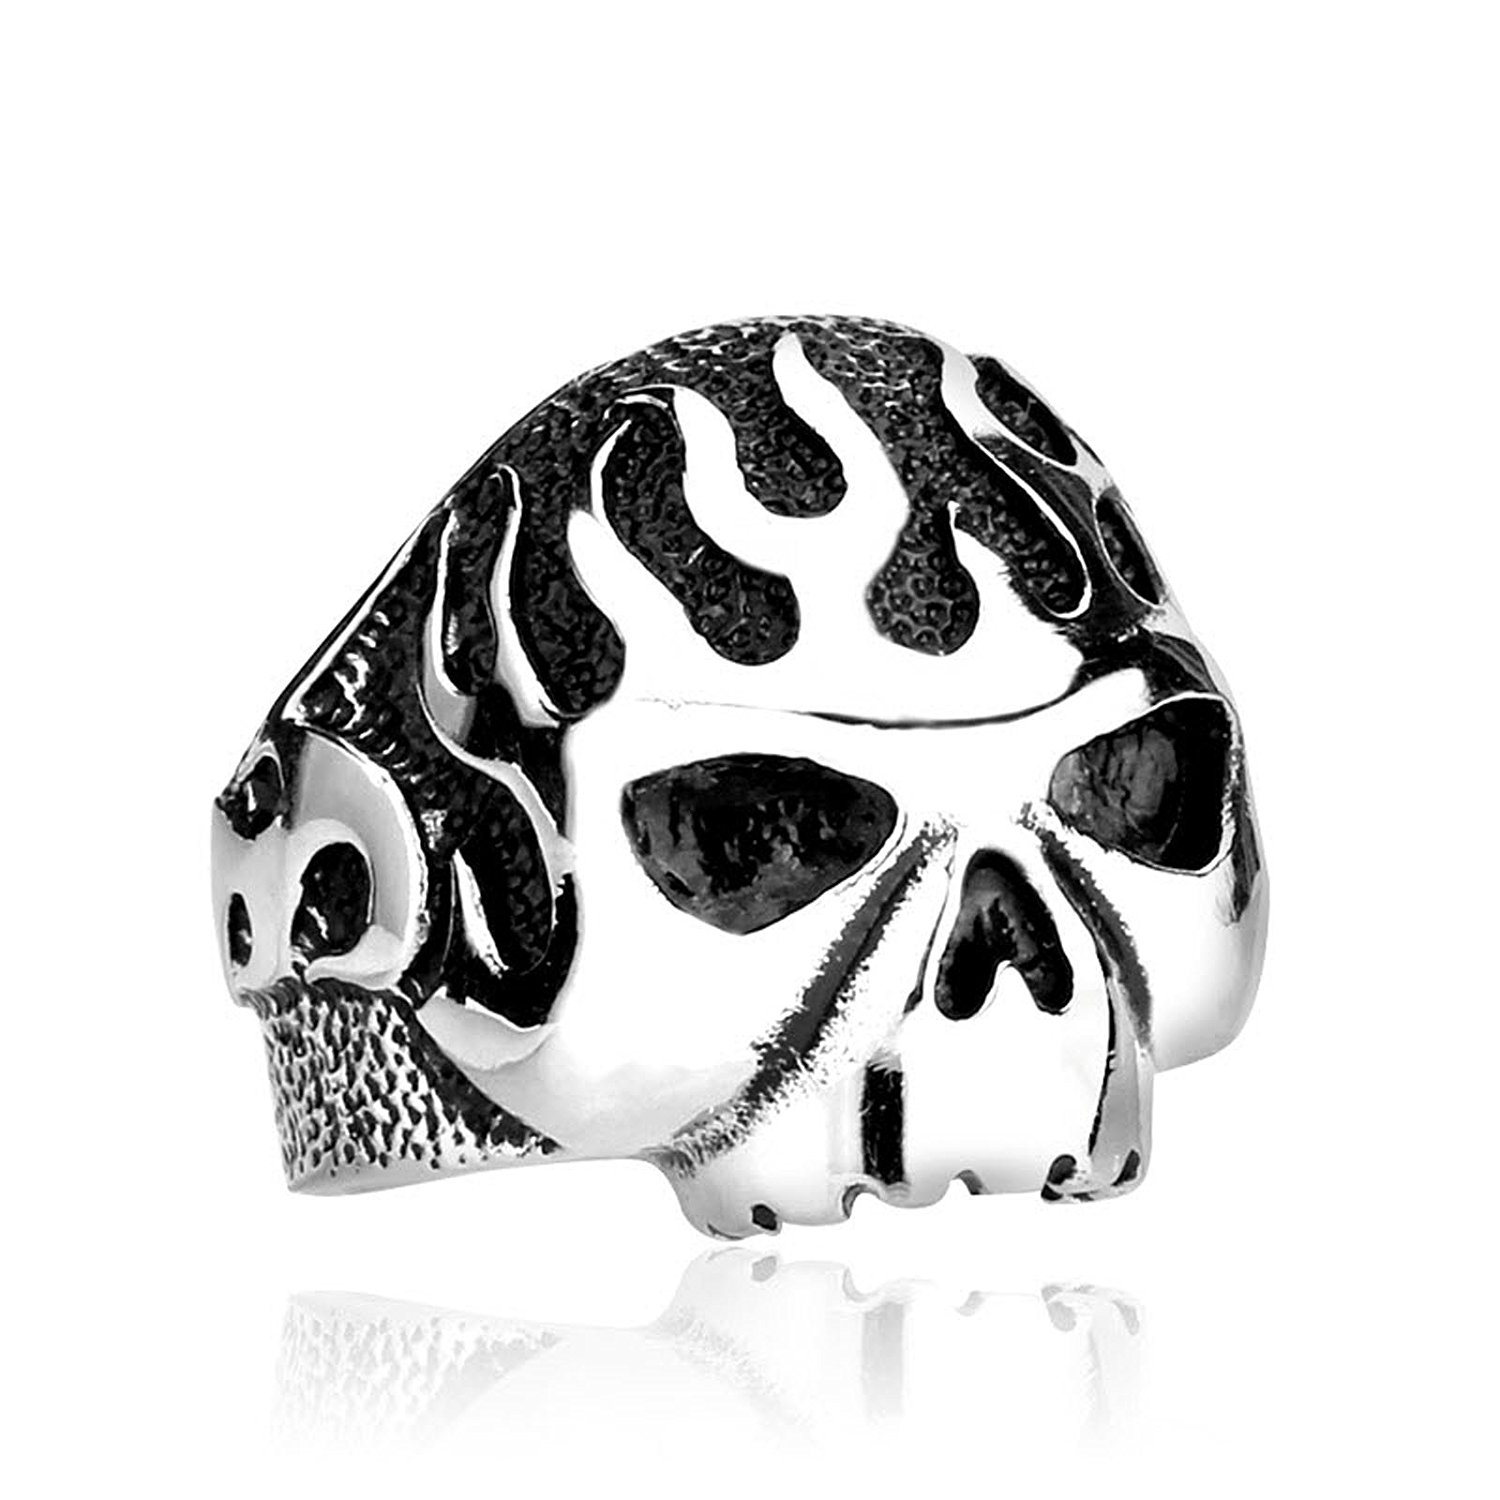 rock rings bike party skeleton hop music findings hiphop from item masquerade punk skull stainless gift hip in jewelry steel goth vintage